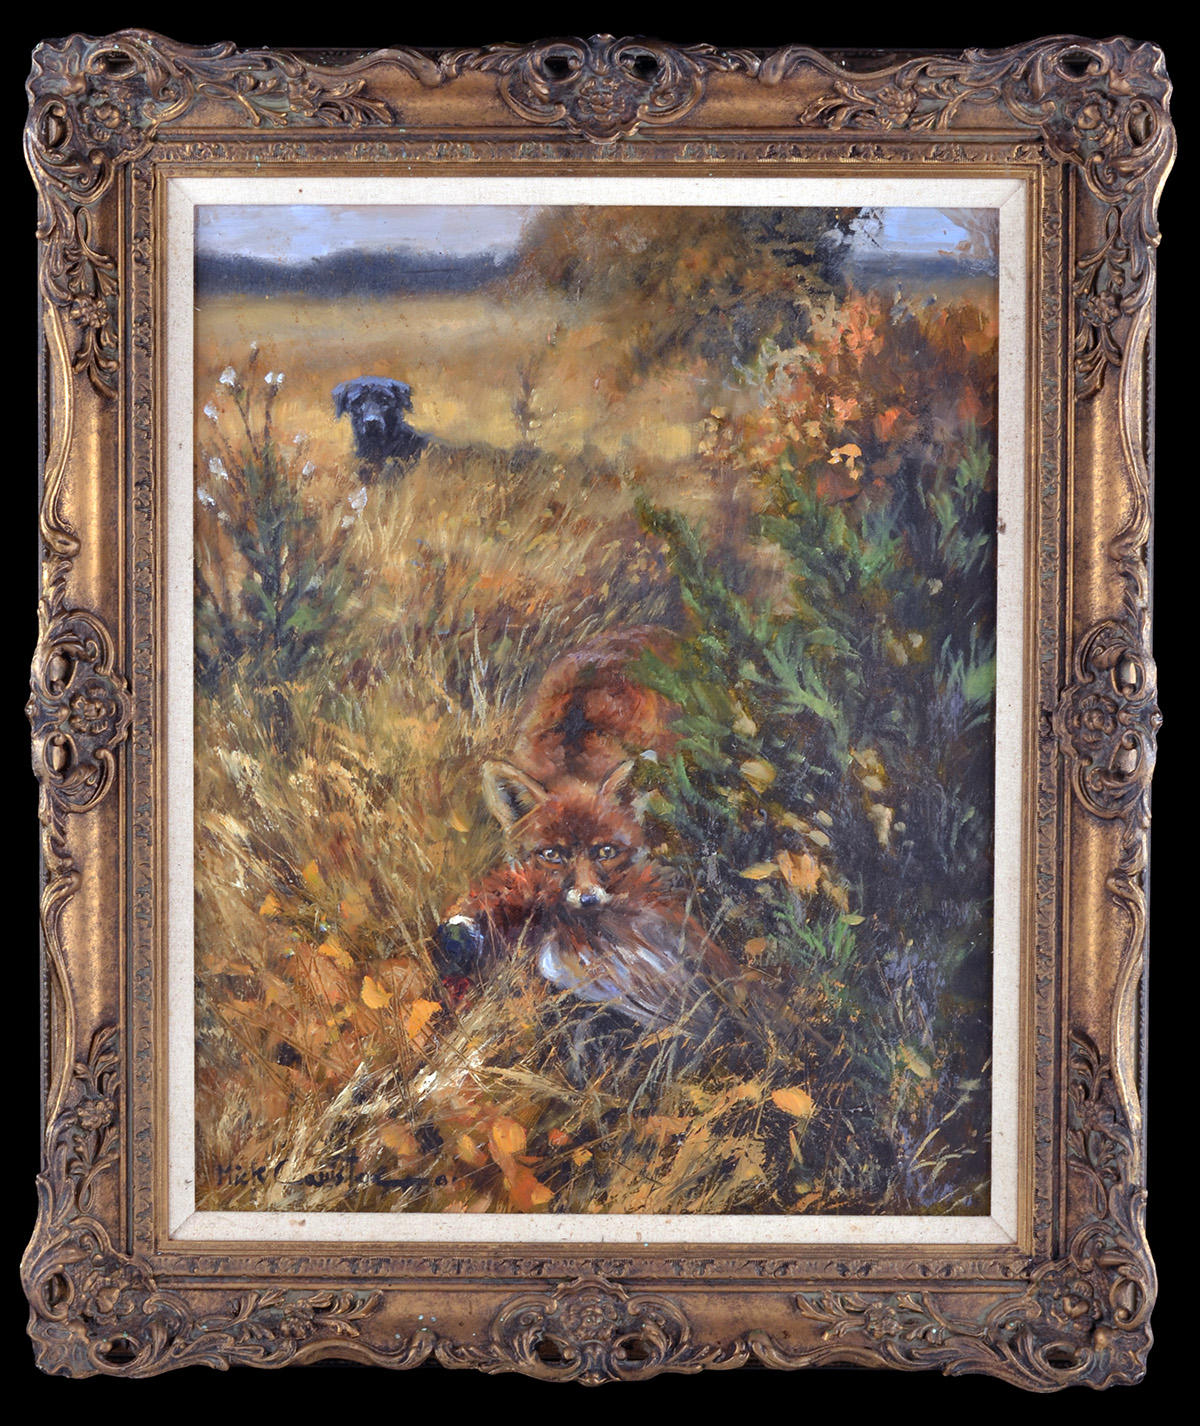 Lot 105 - MICK CAWSTON (1959-2006) AN ORIGINAL OIL ON CANVAS, showing hound, fox and pheasant in country